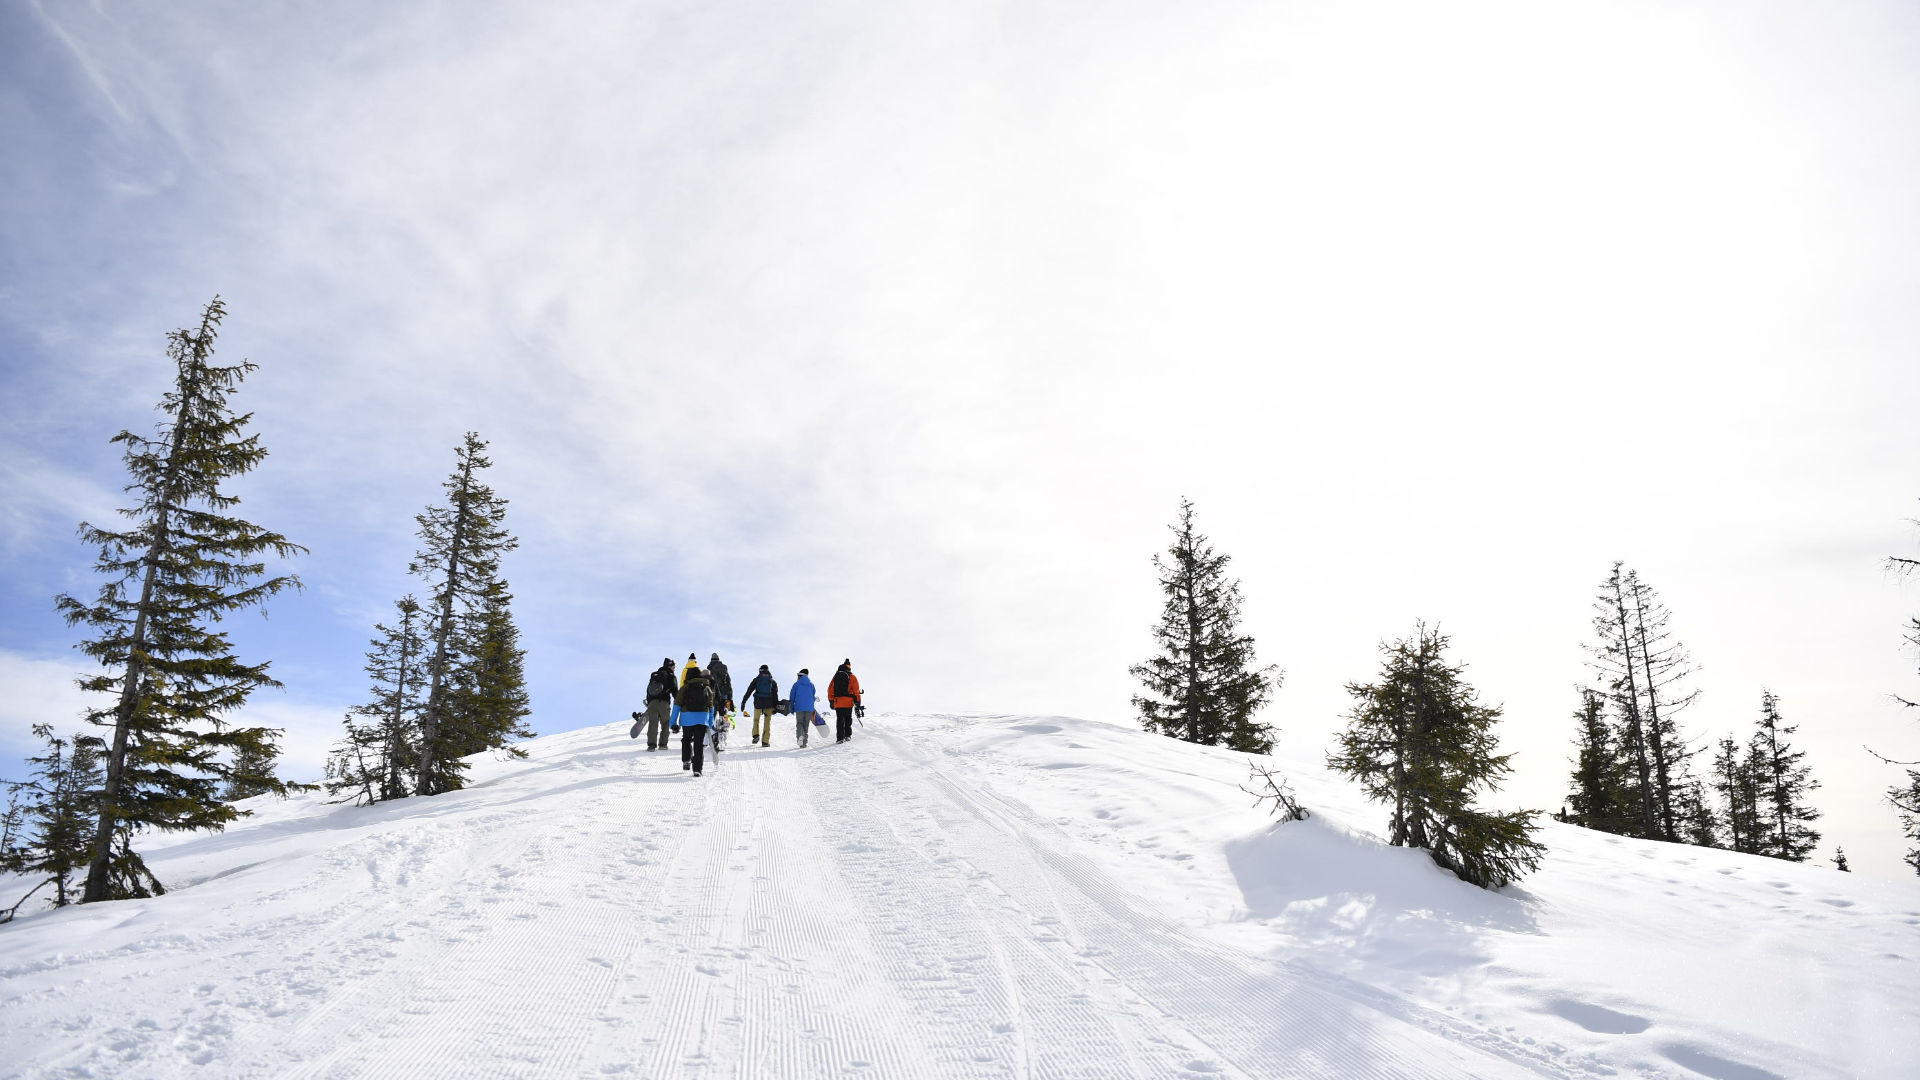 Sunny and partly cloudy conditions in the mountains